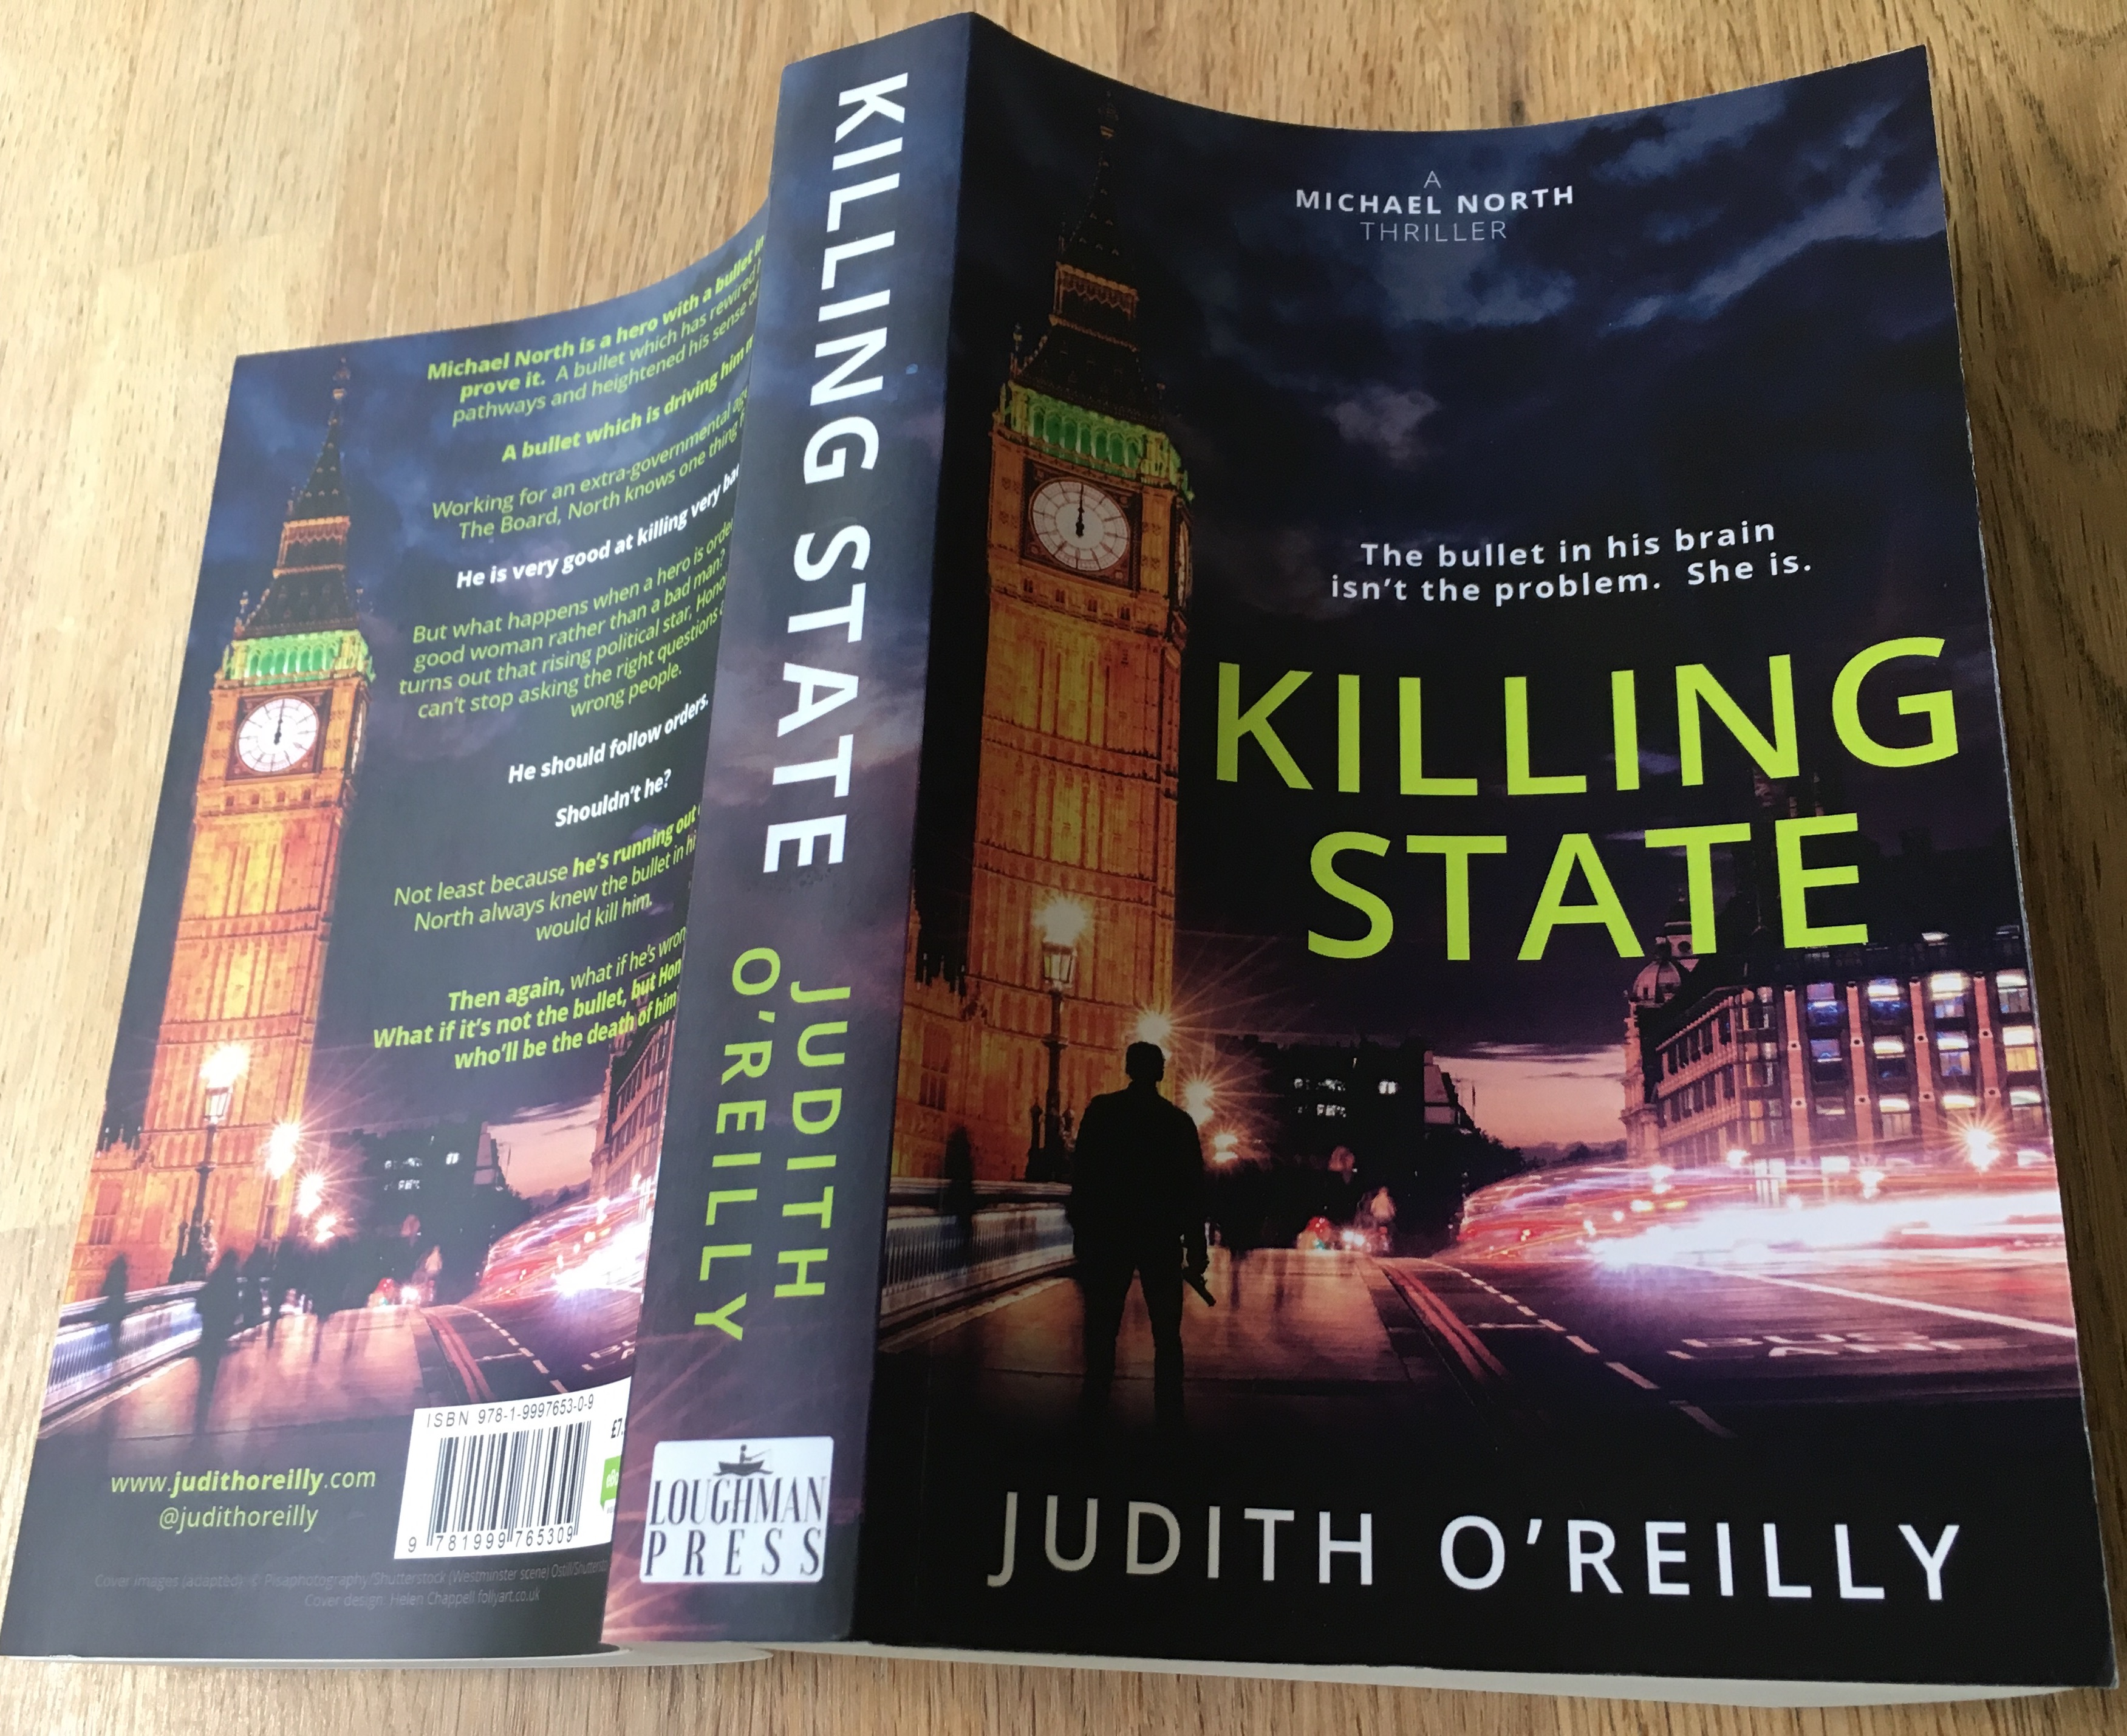 Killing State novel open to show cover